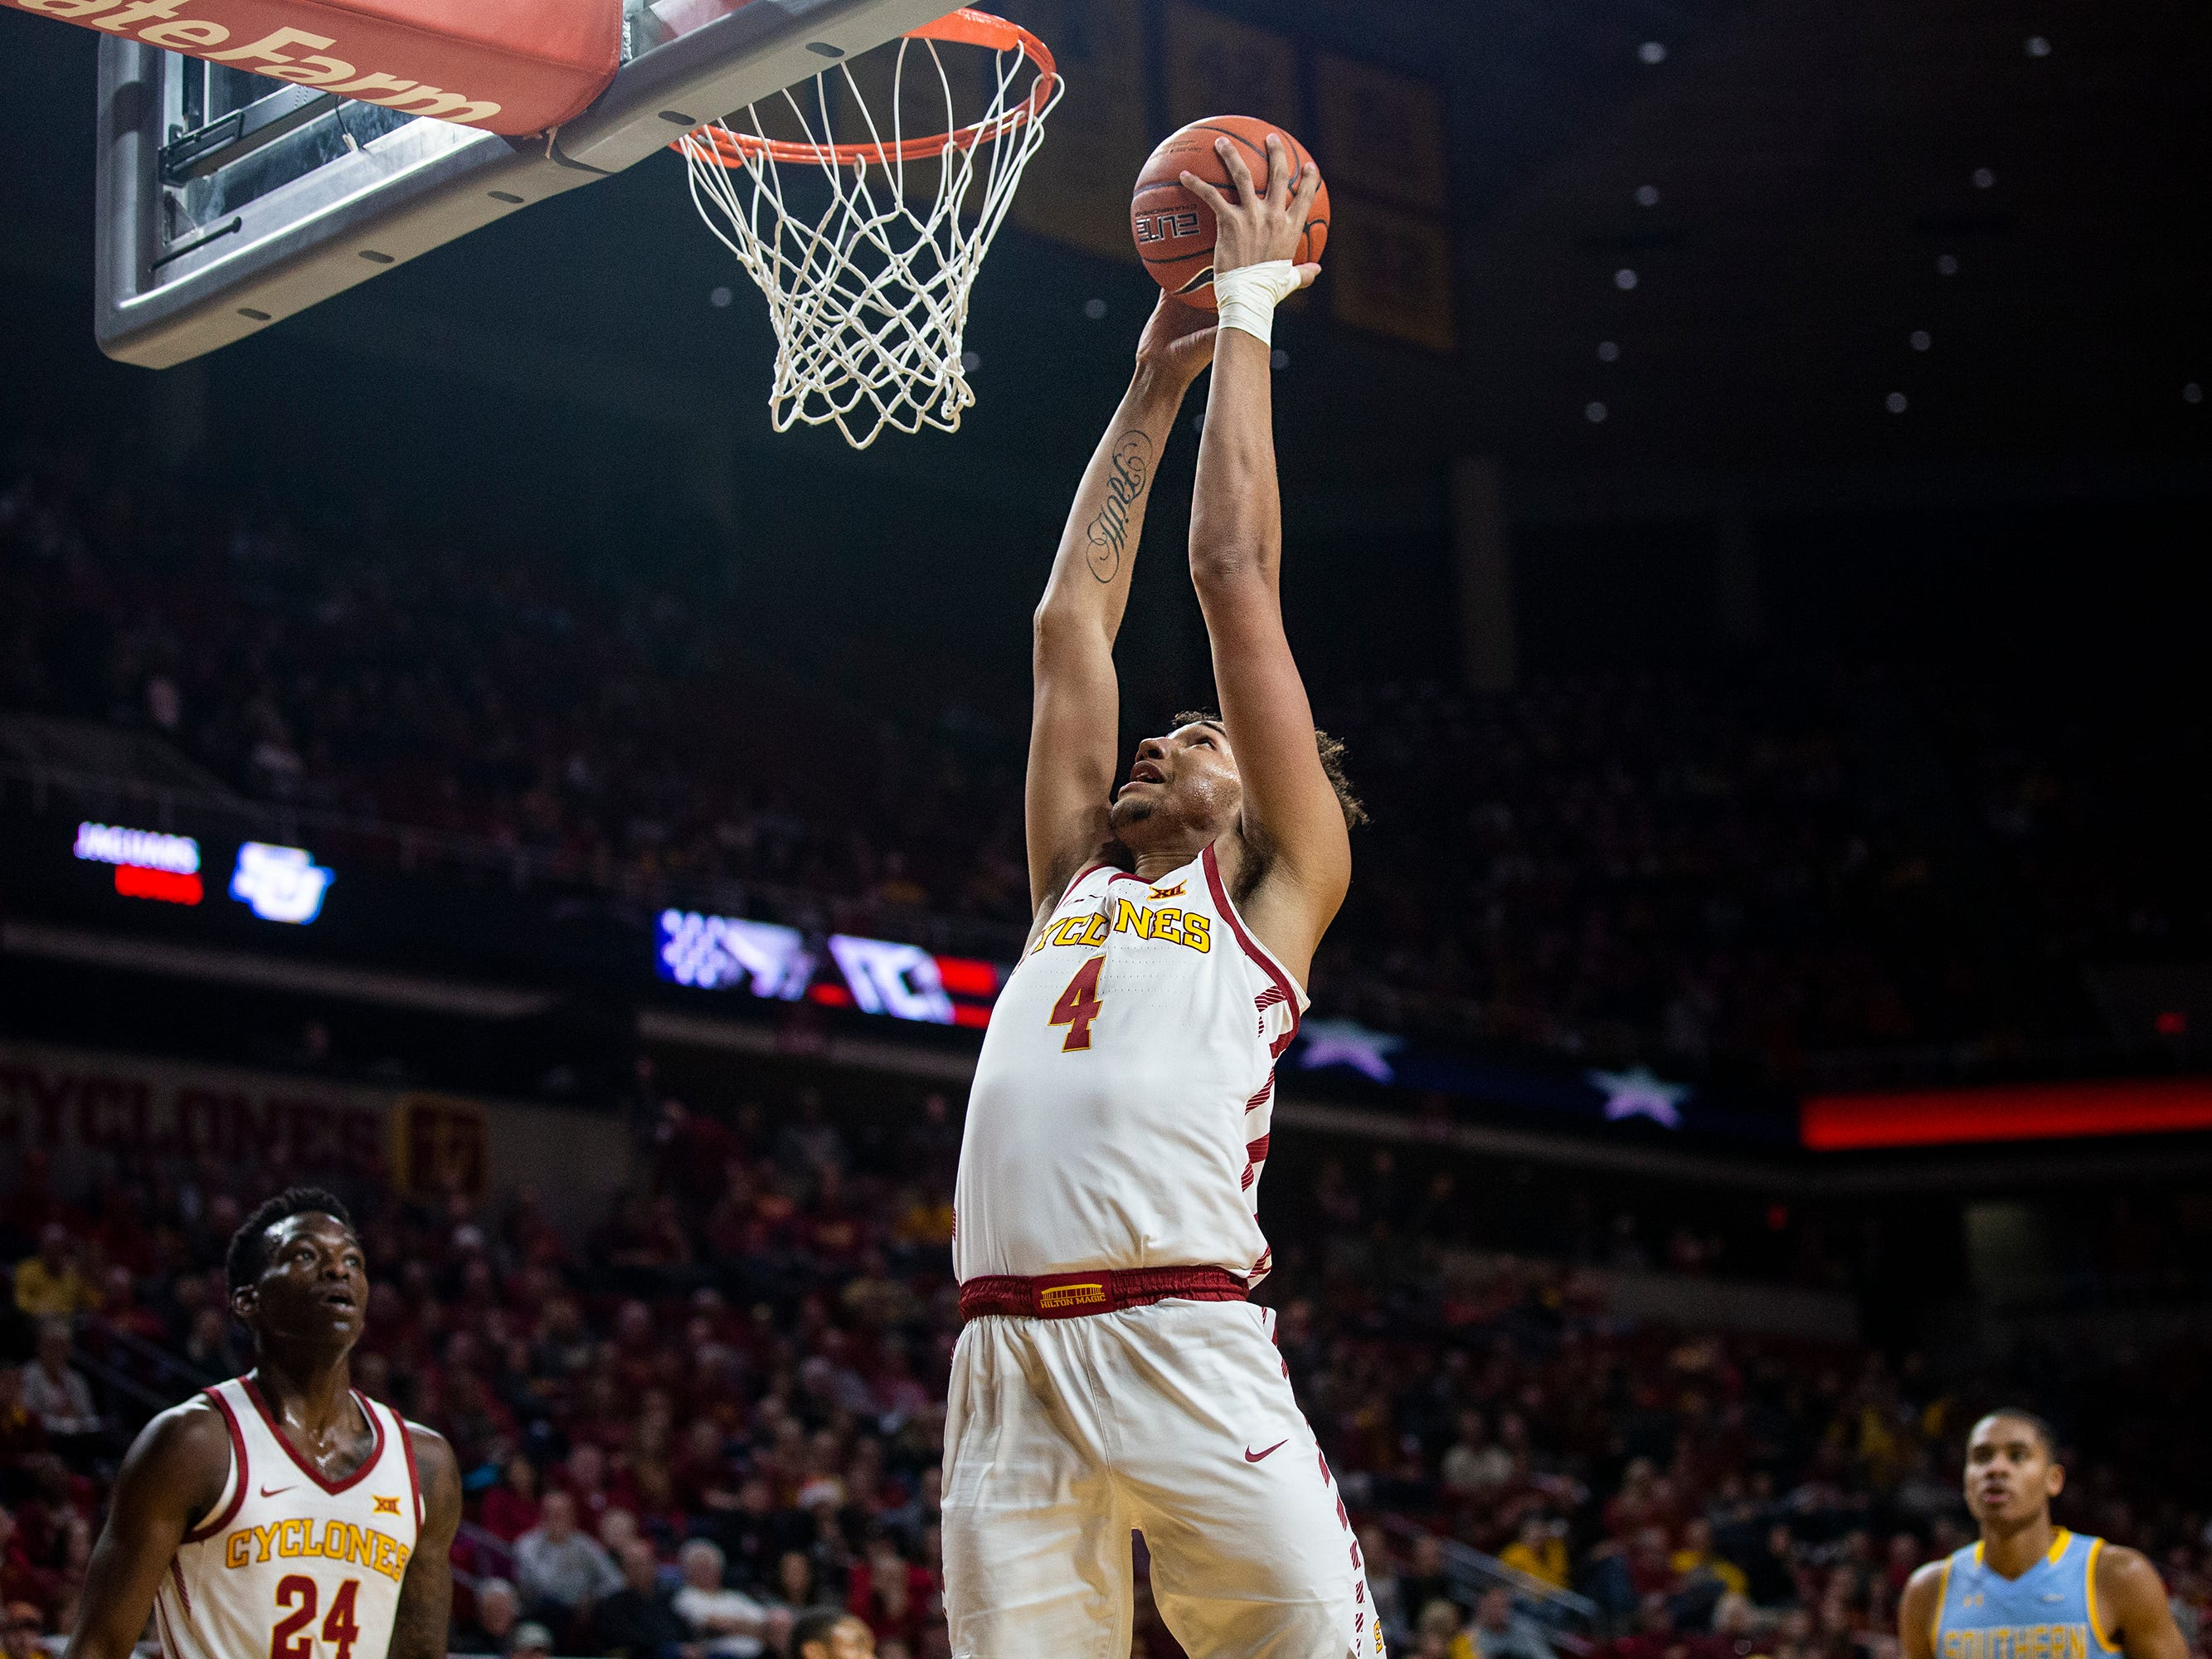 Iowa State's George Conditt dunks the ball during the Iowa State men's basketball game against Southern on Sunday, Dec. 9, 2018, in Hilton Coliseum.